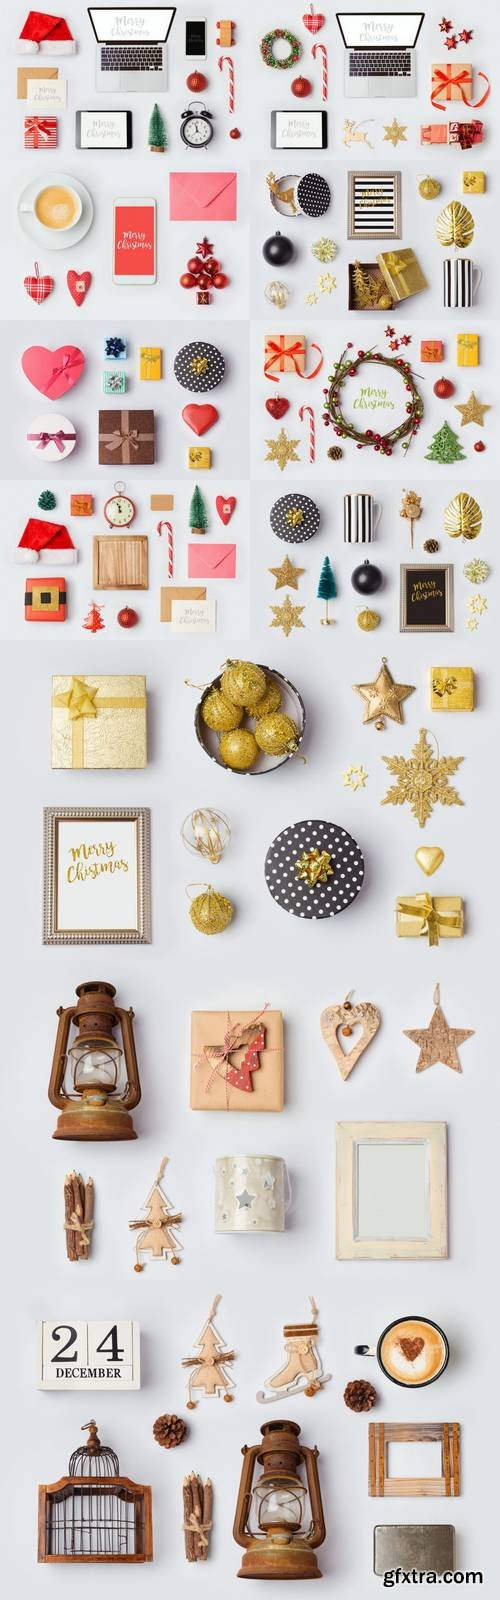 Christmas Rustic Ornaments and Objects for Mock Up Template Design